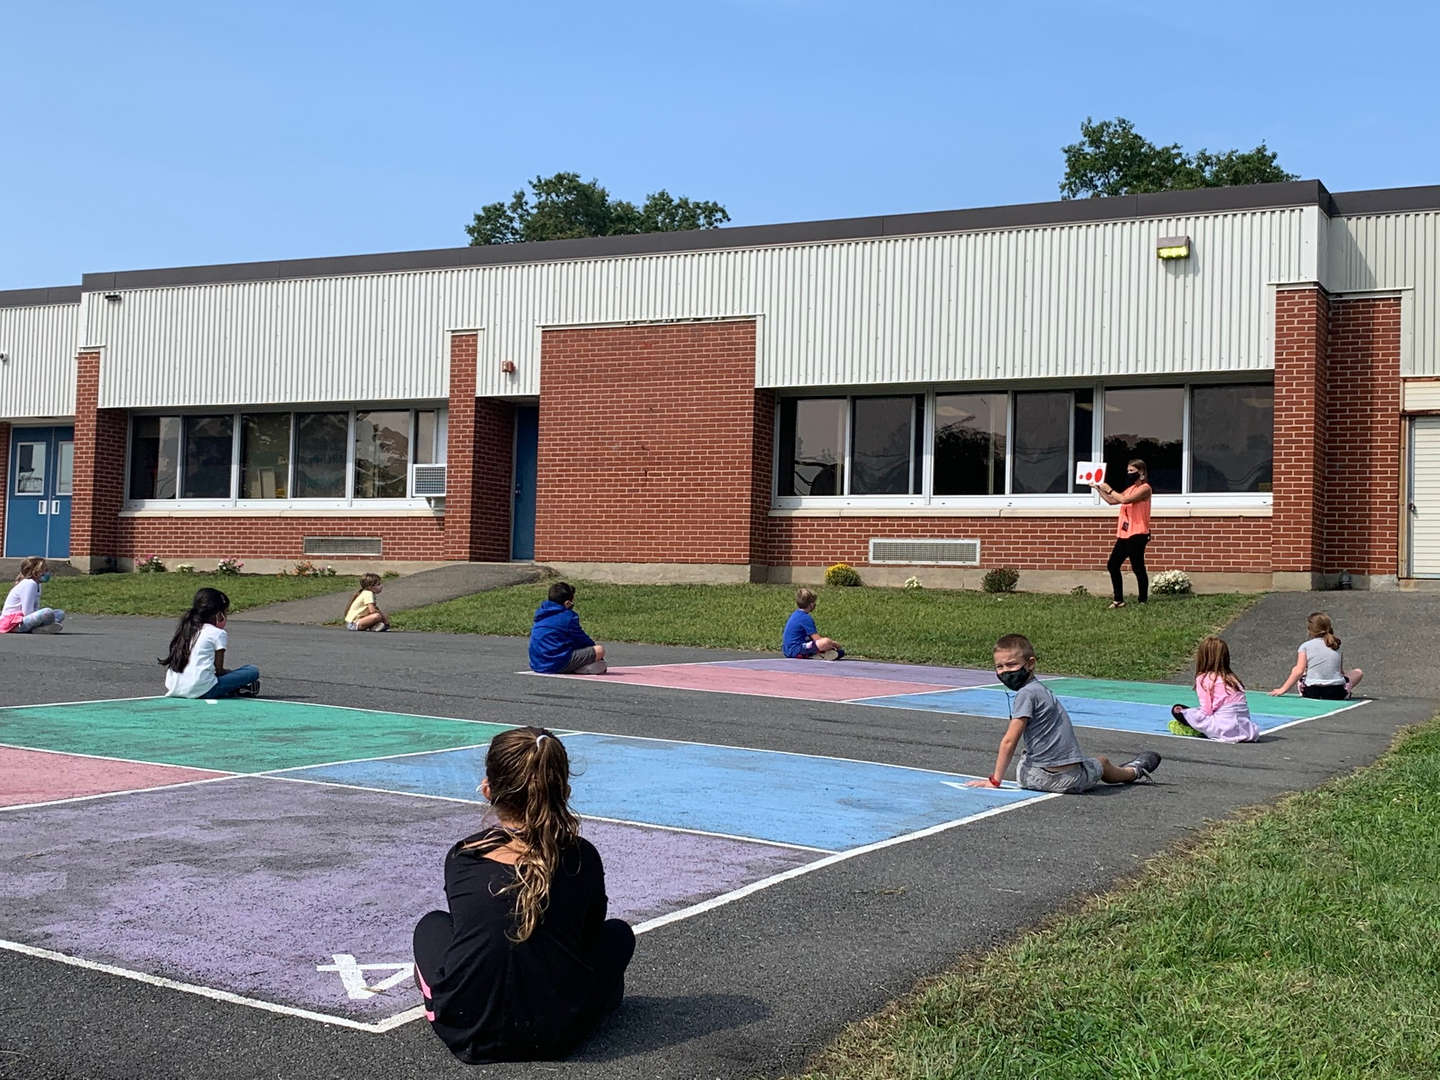 Teacher reading to students on blacktop